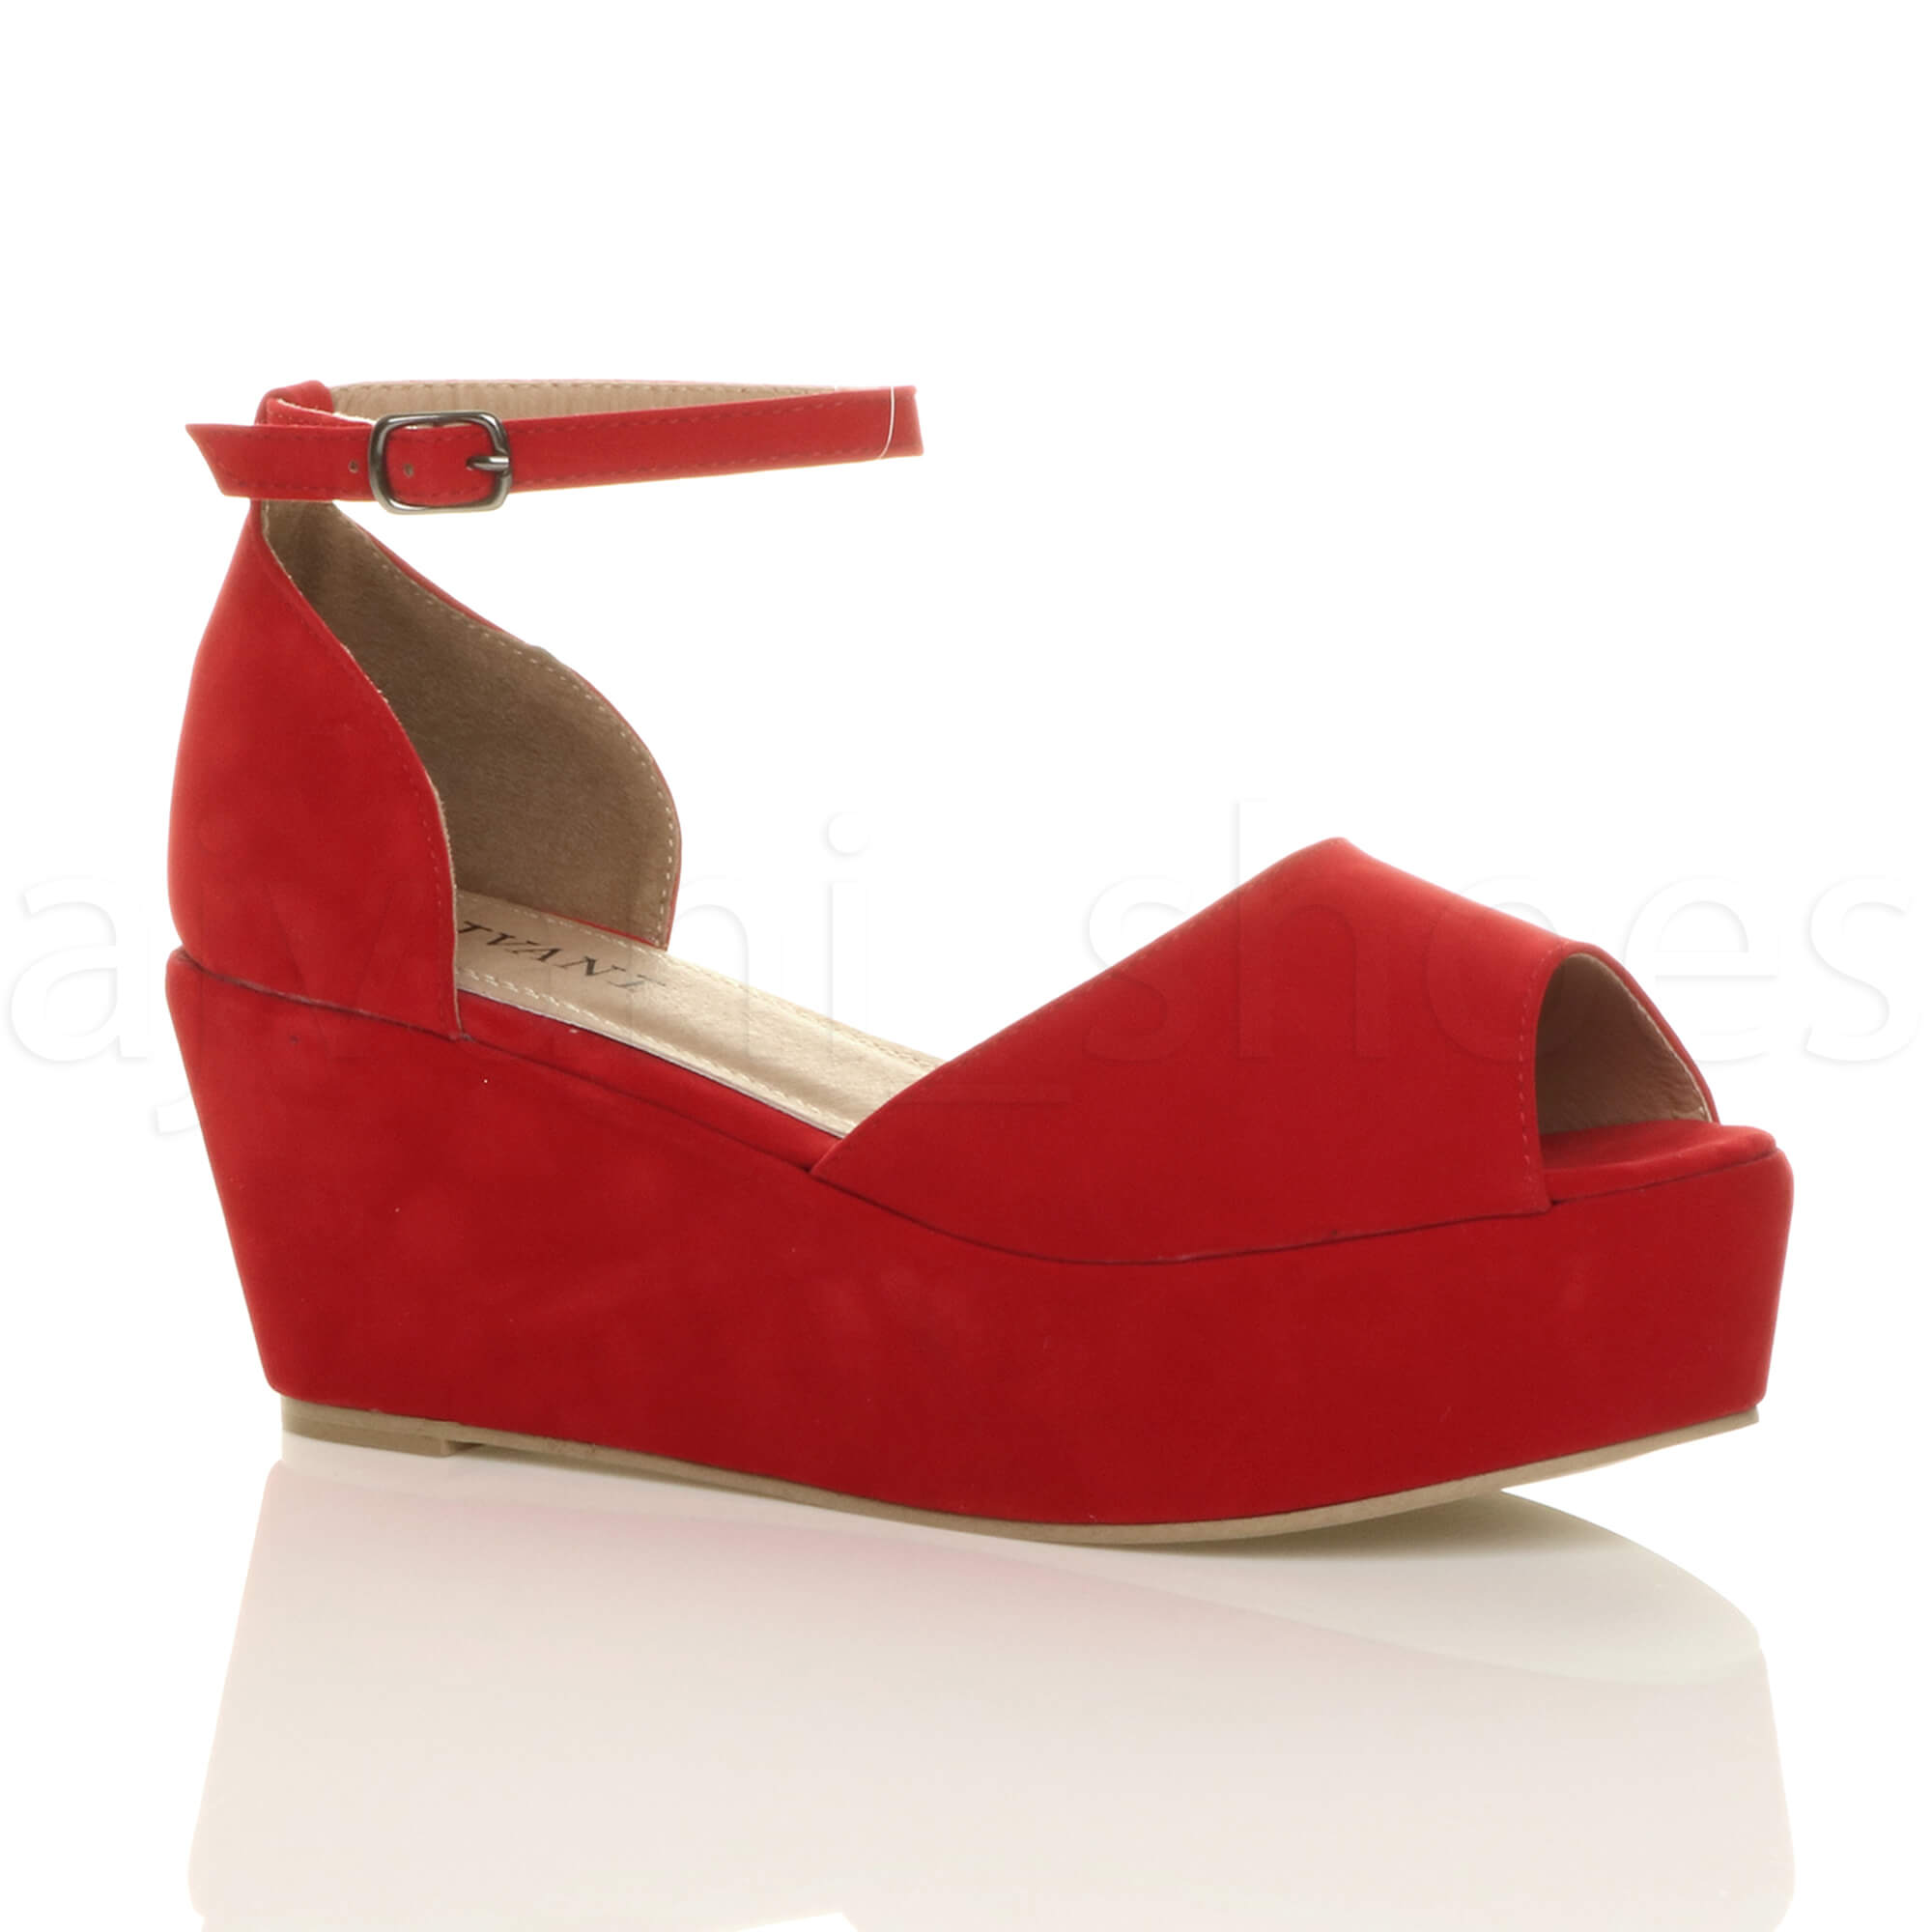 Red Wedge Shoes Size